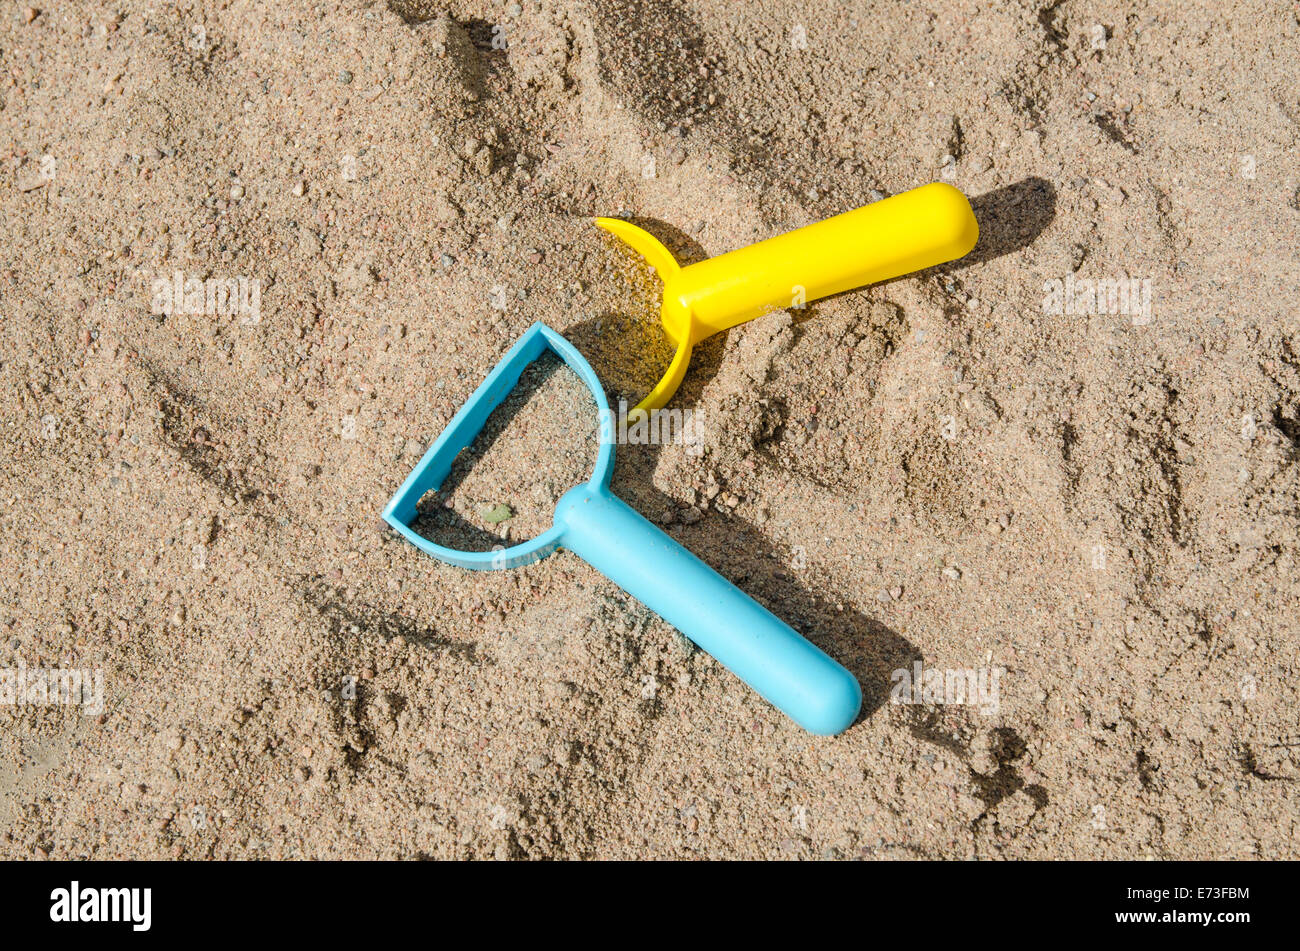 Closeup of plastic toys in a sandbox - conceptual sandbox level - Stock Image